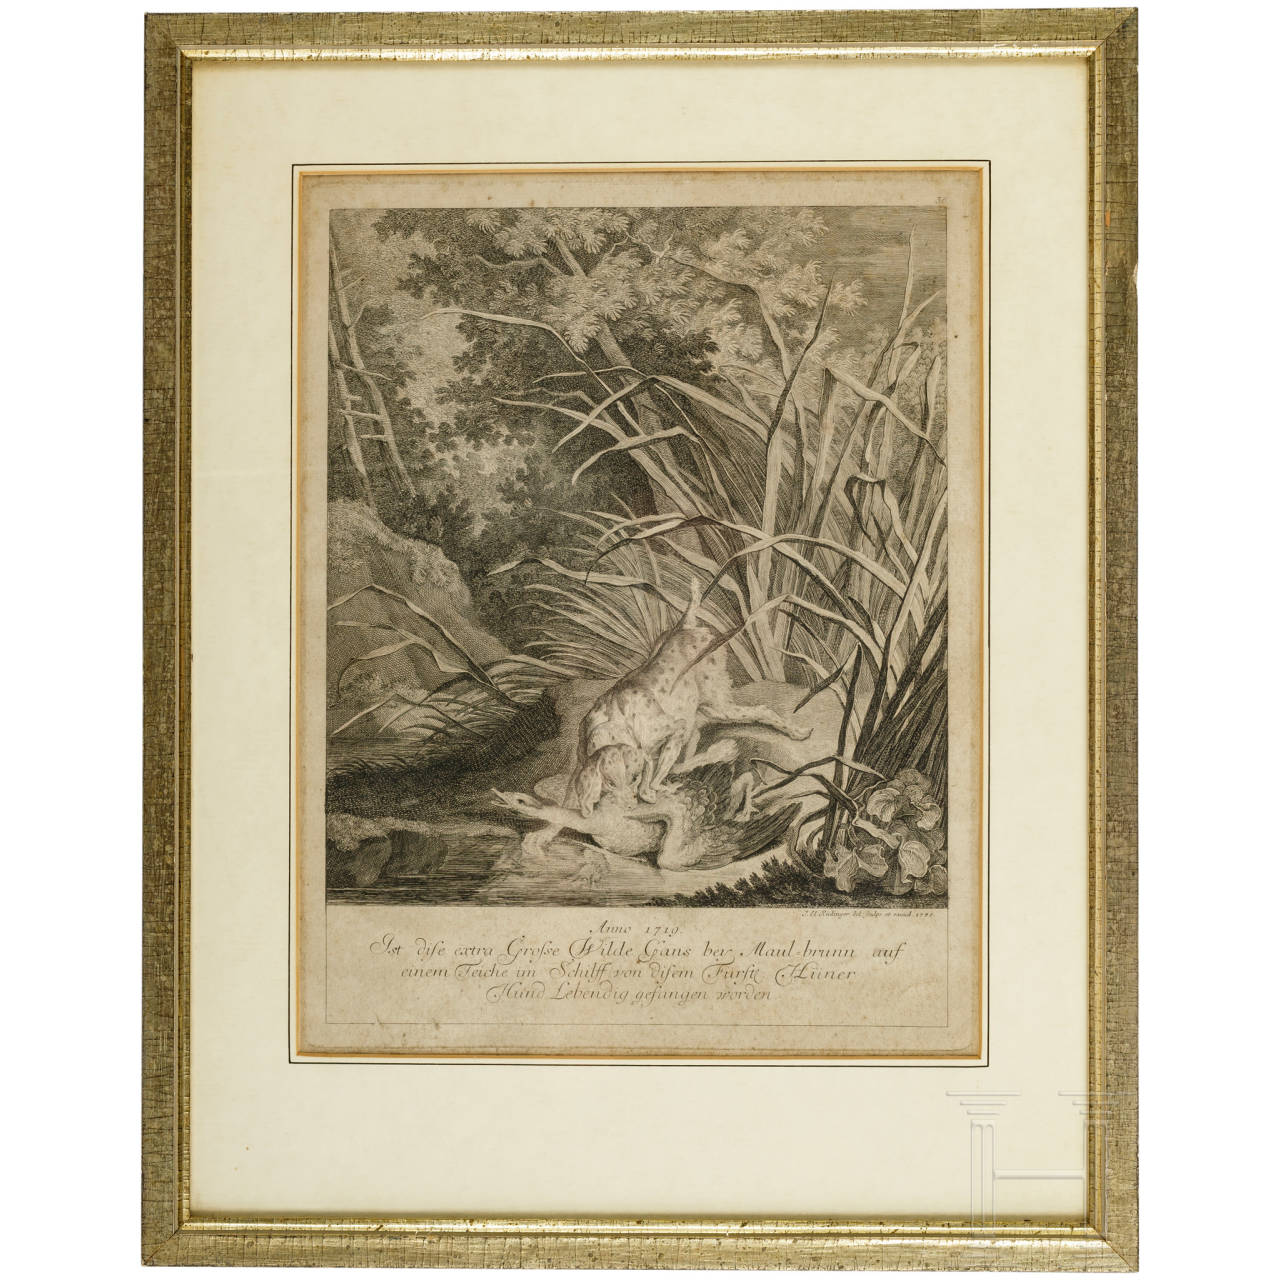 Johann Elias Ridinger (1698 - 1767), copper engraving with hunting motifs, undated